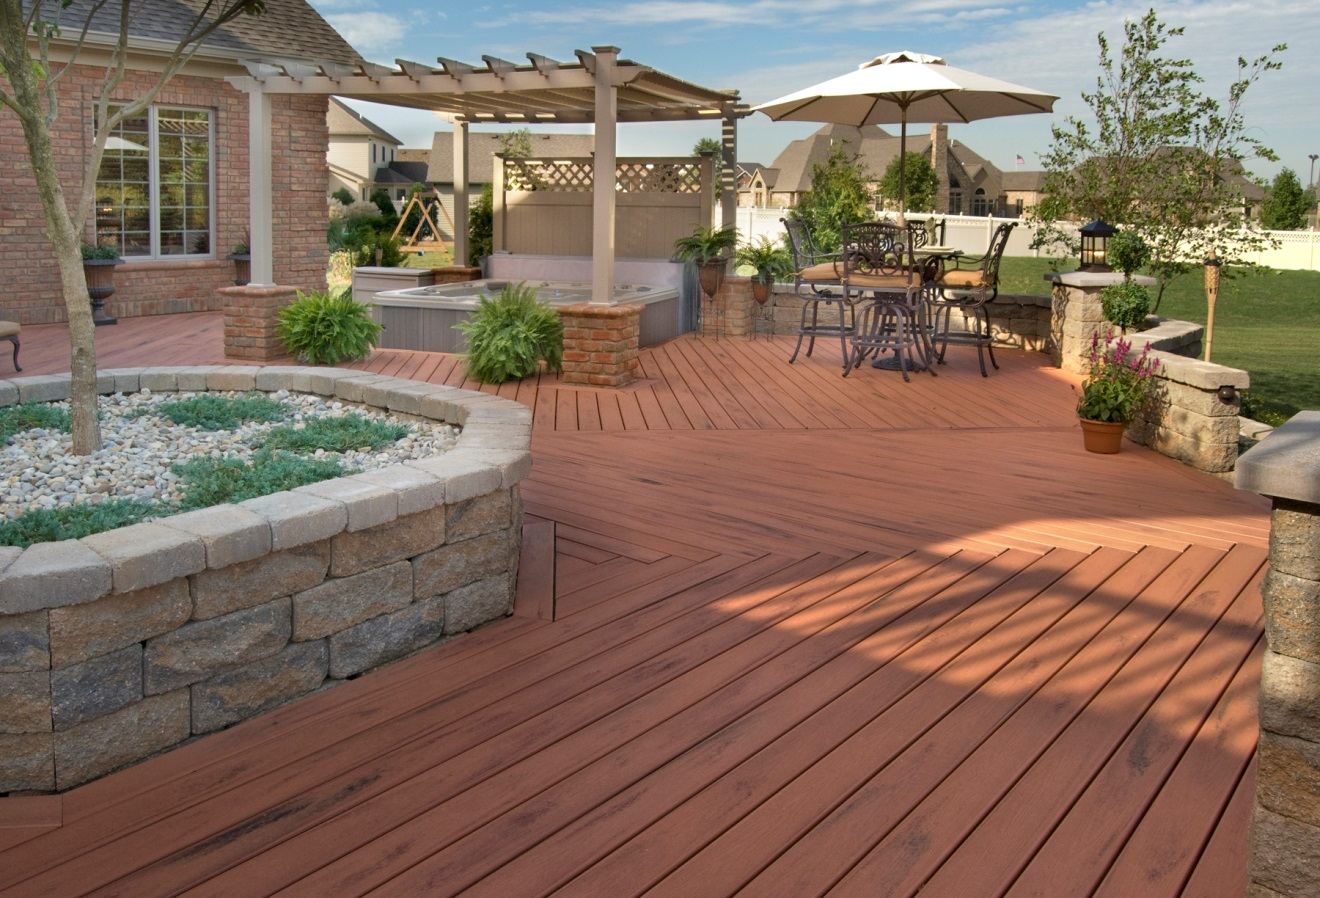 outdoor spa and patio